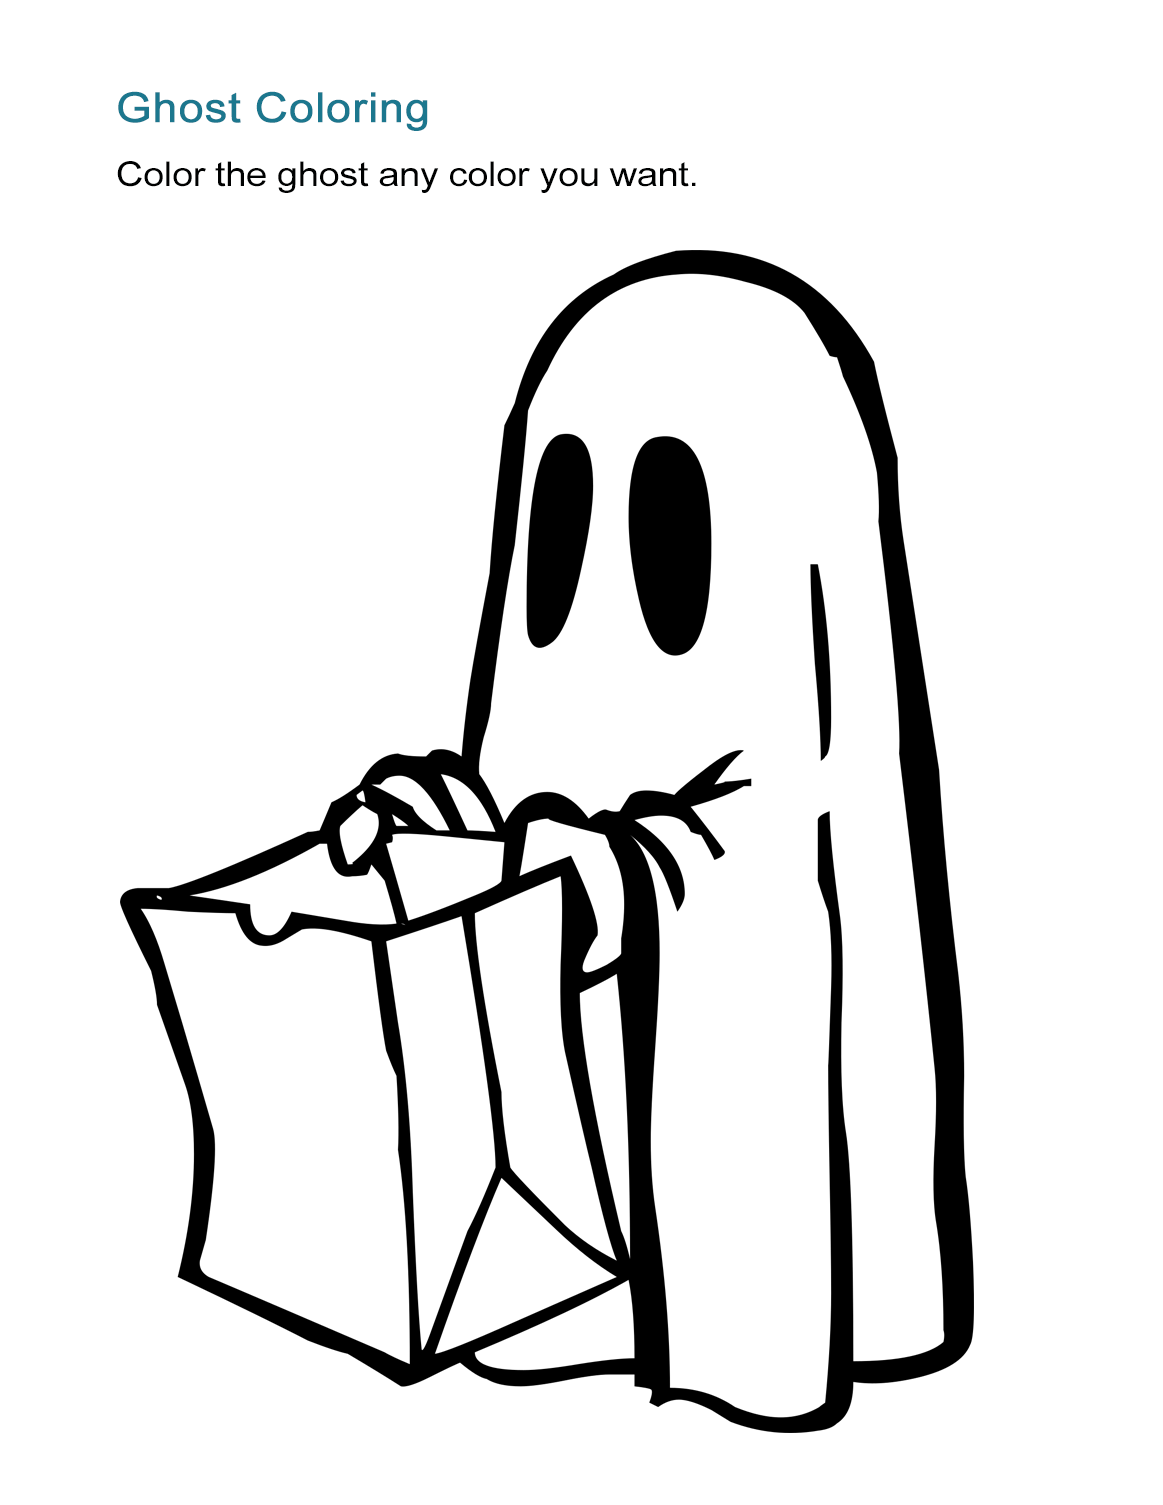 10 halloween coloring sheets: free and print-ready - all esl